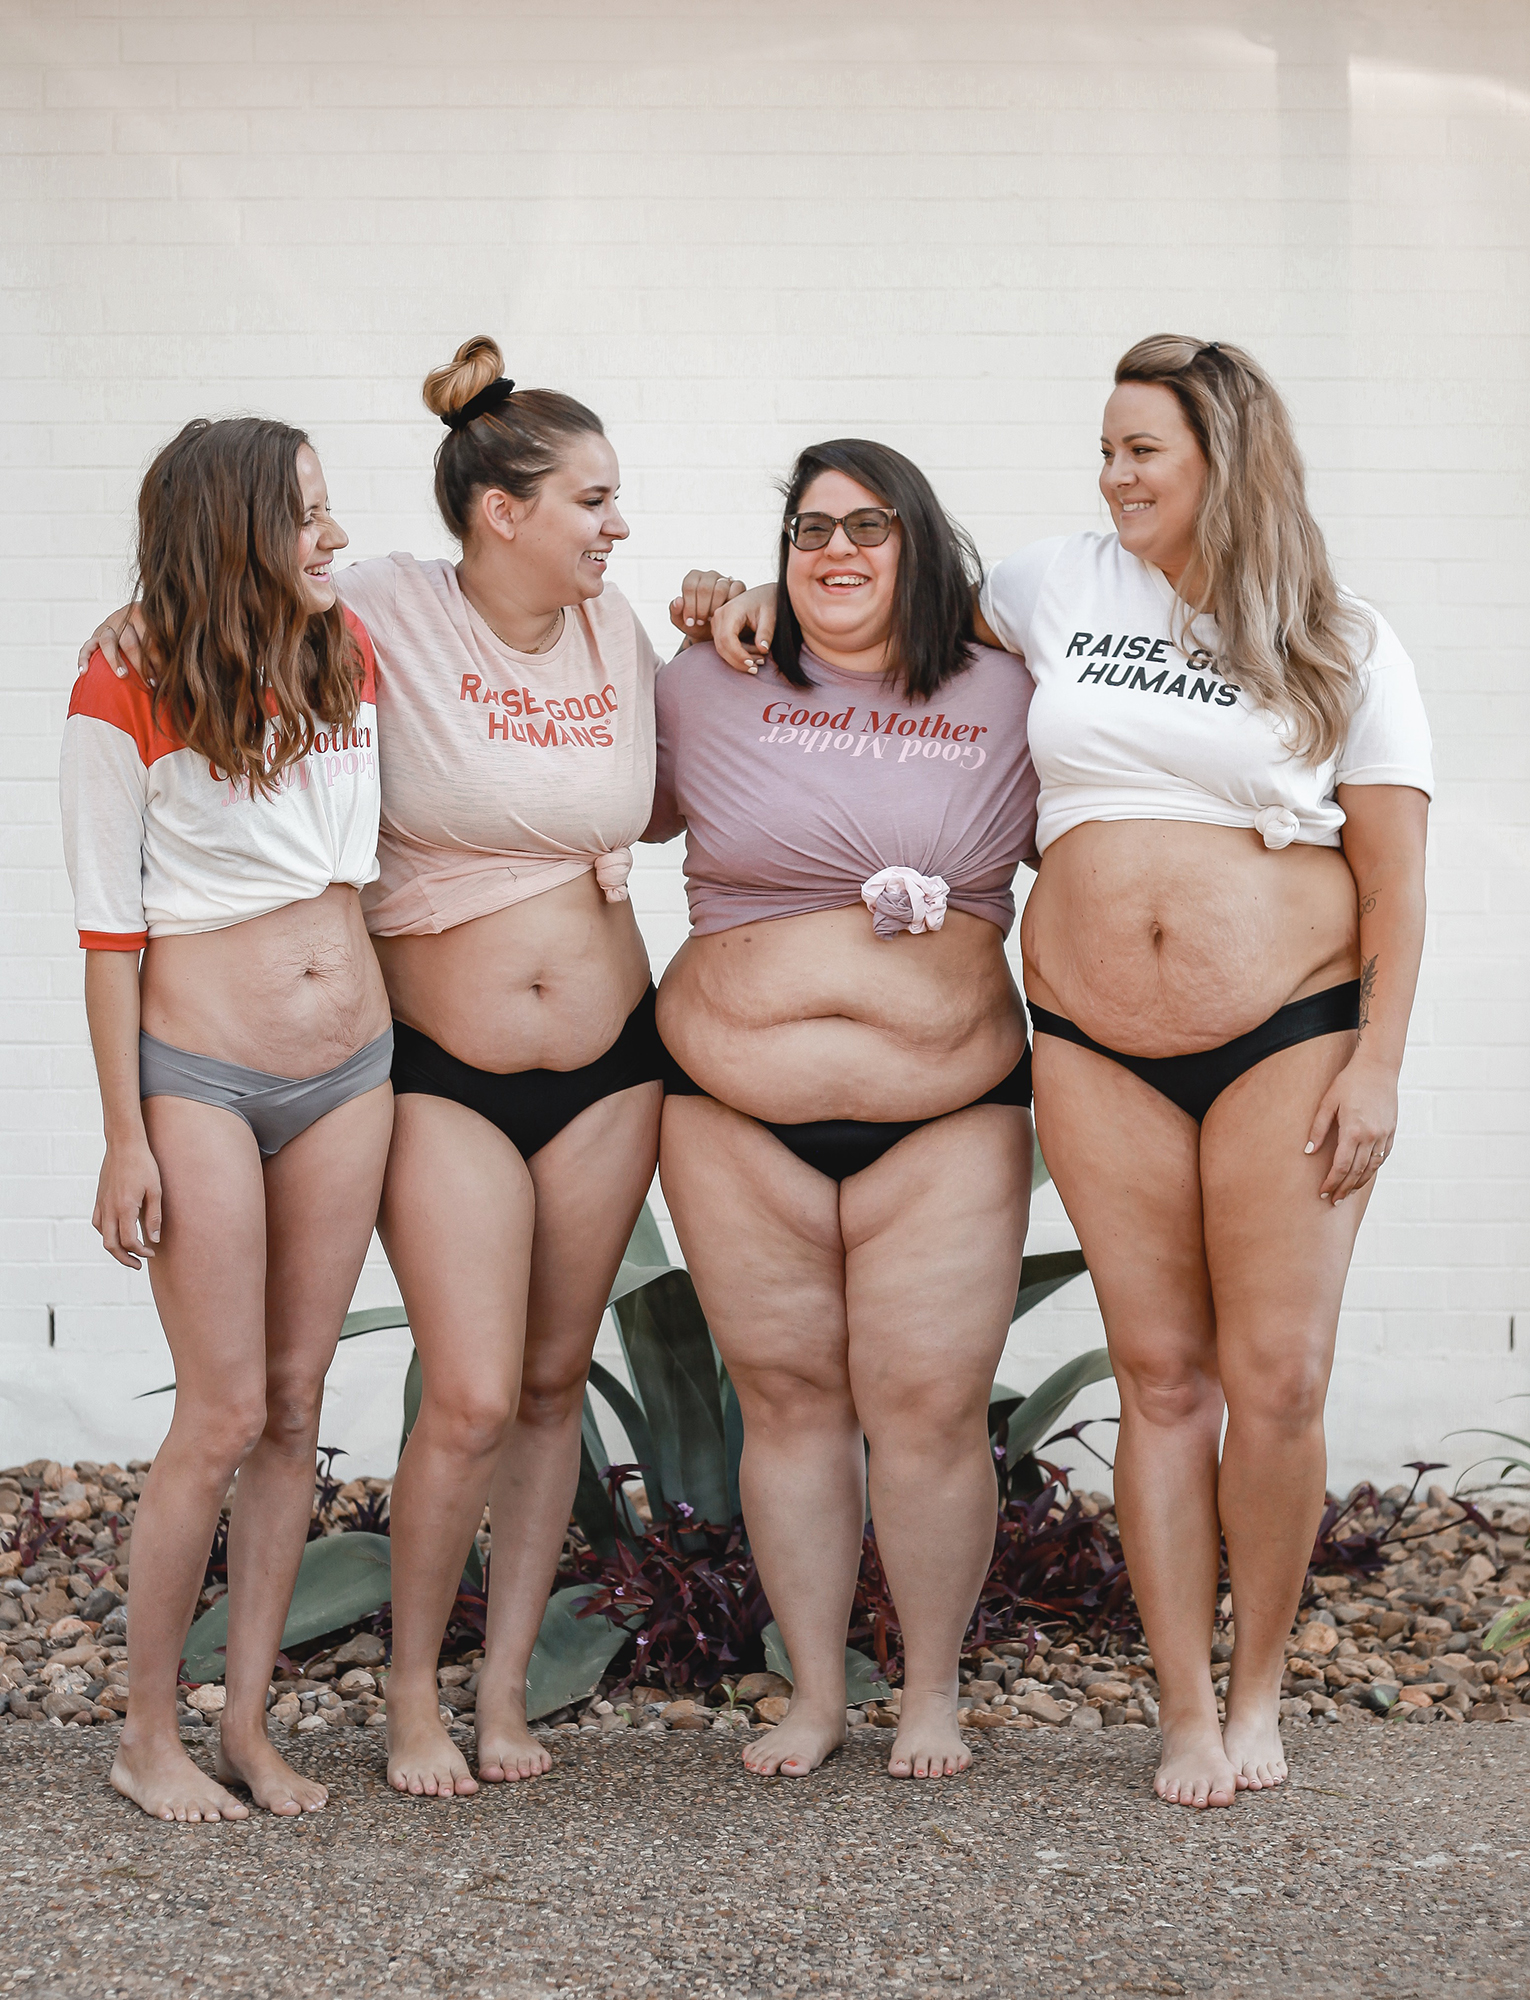 4 Moms Show Off Their Postpartum Bodies in Photo: 'If It Helped Even One Woman, We Would Be Happy'